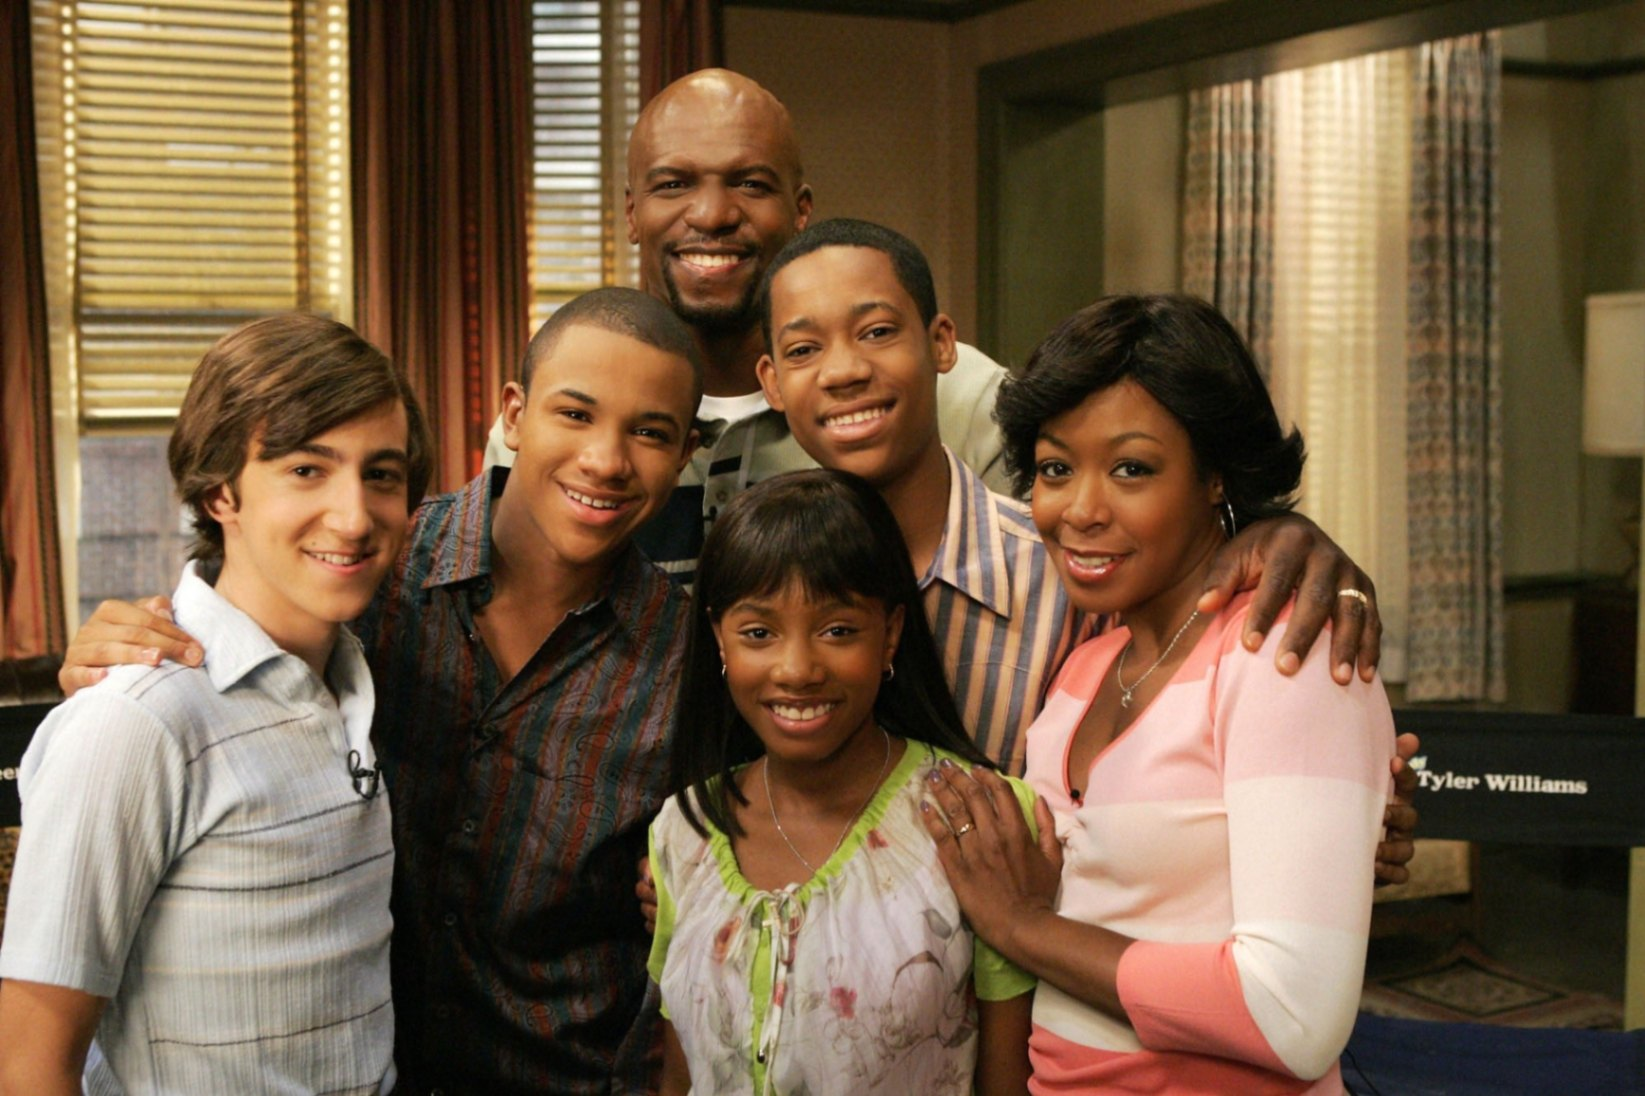 Find Out How the Actors of Everybody Hates Chris Are Today